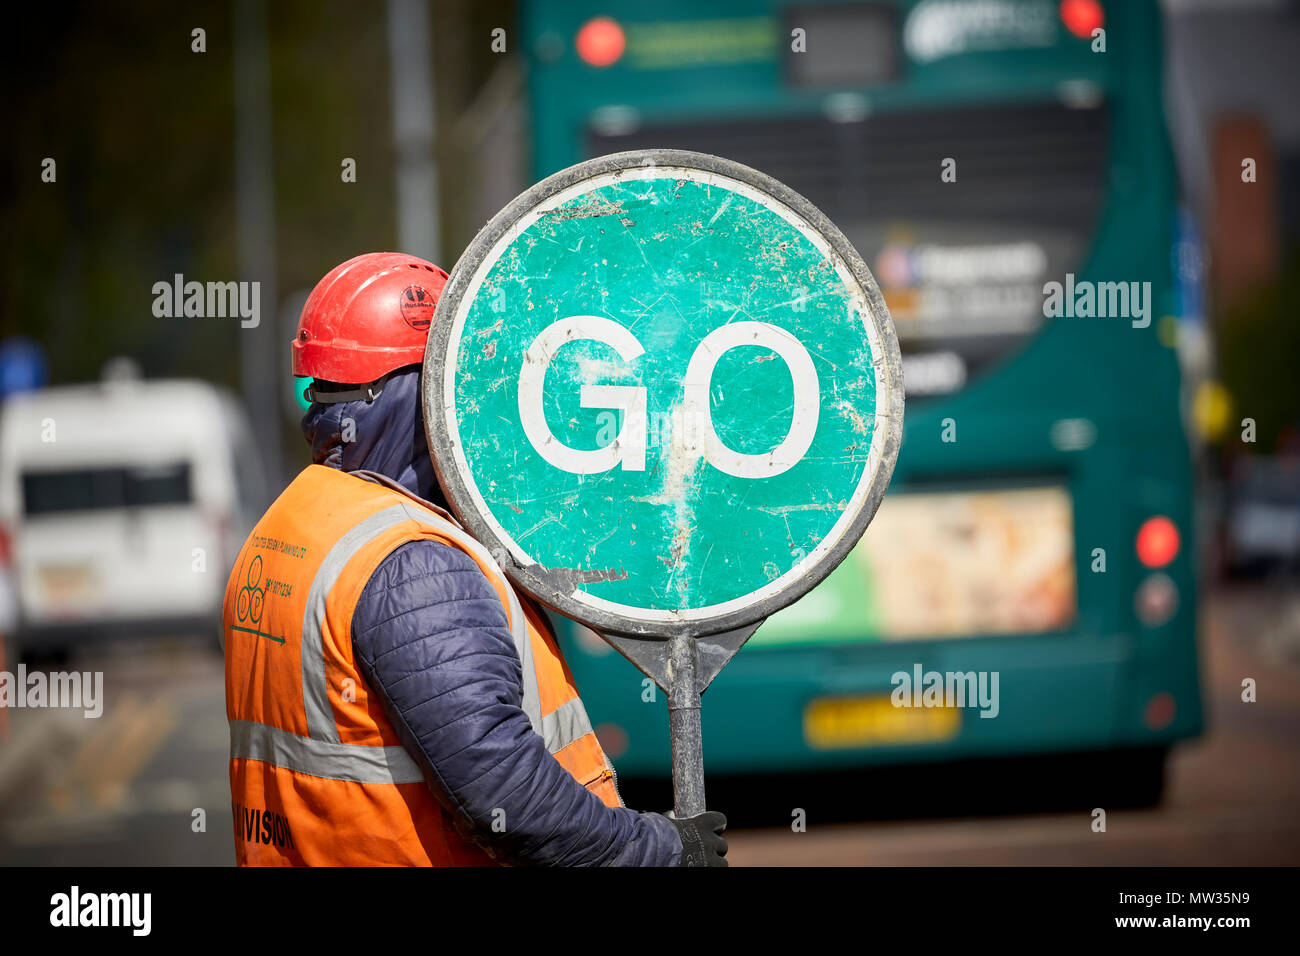 Construction worker using a manual traffic flow management using a stop go sign Oxford Road in Manchester - Stock Image